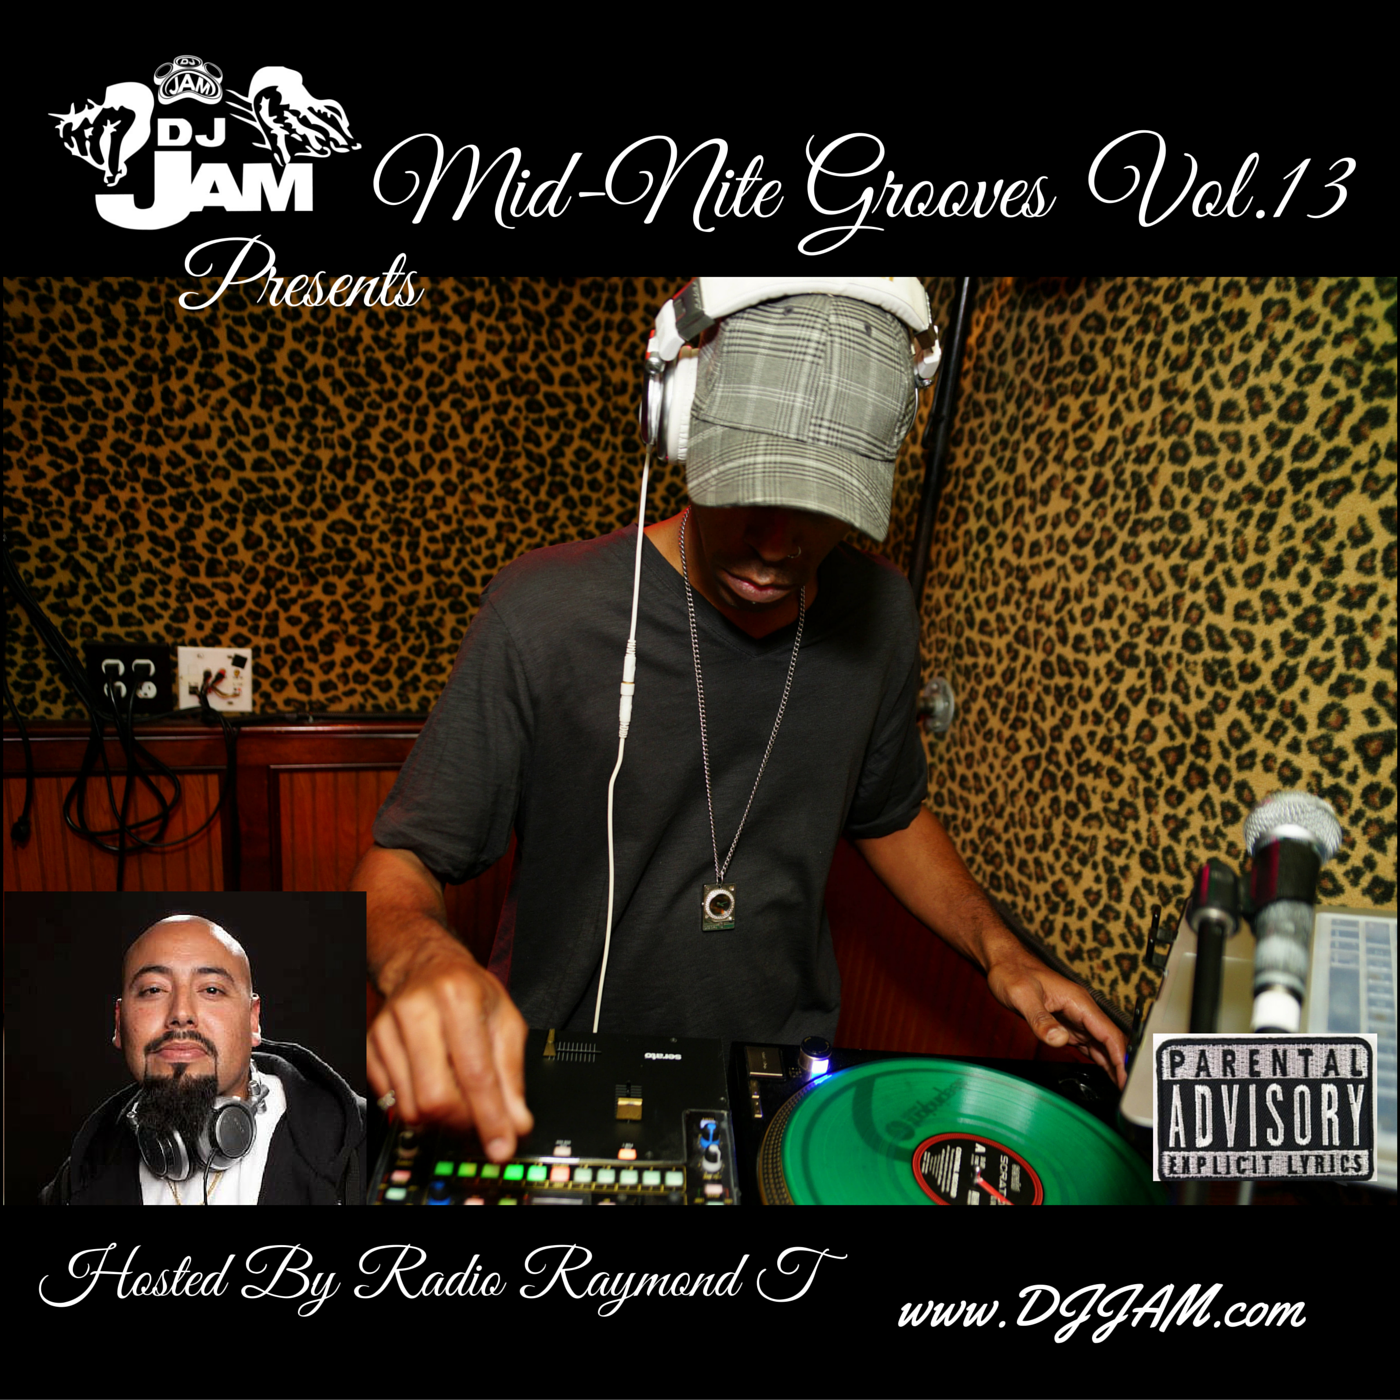 """""""NEW MUSIC"""" Mid-Nite Grooves Vol.13 Hosted by Radio Raymond T.   Stream 